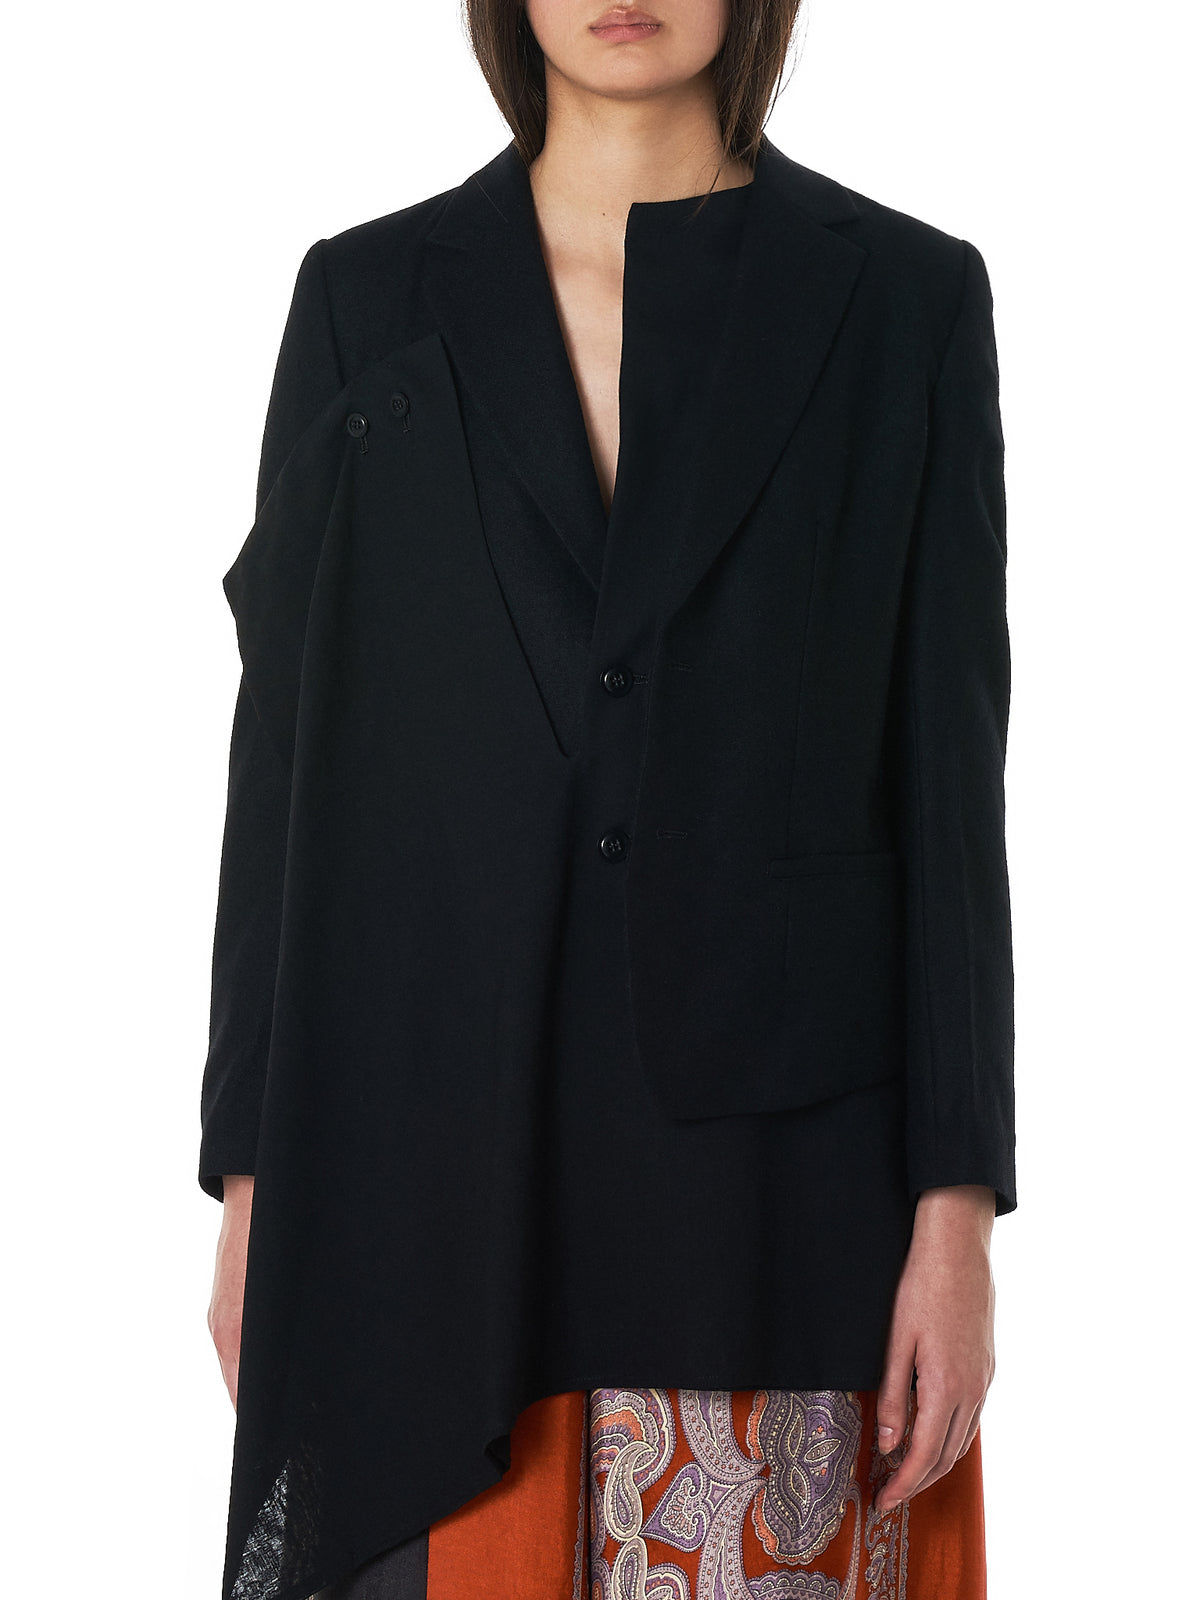 Thin Top Flannel Jacket (YV-J08-117-3-BLACK)